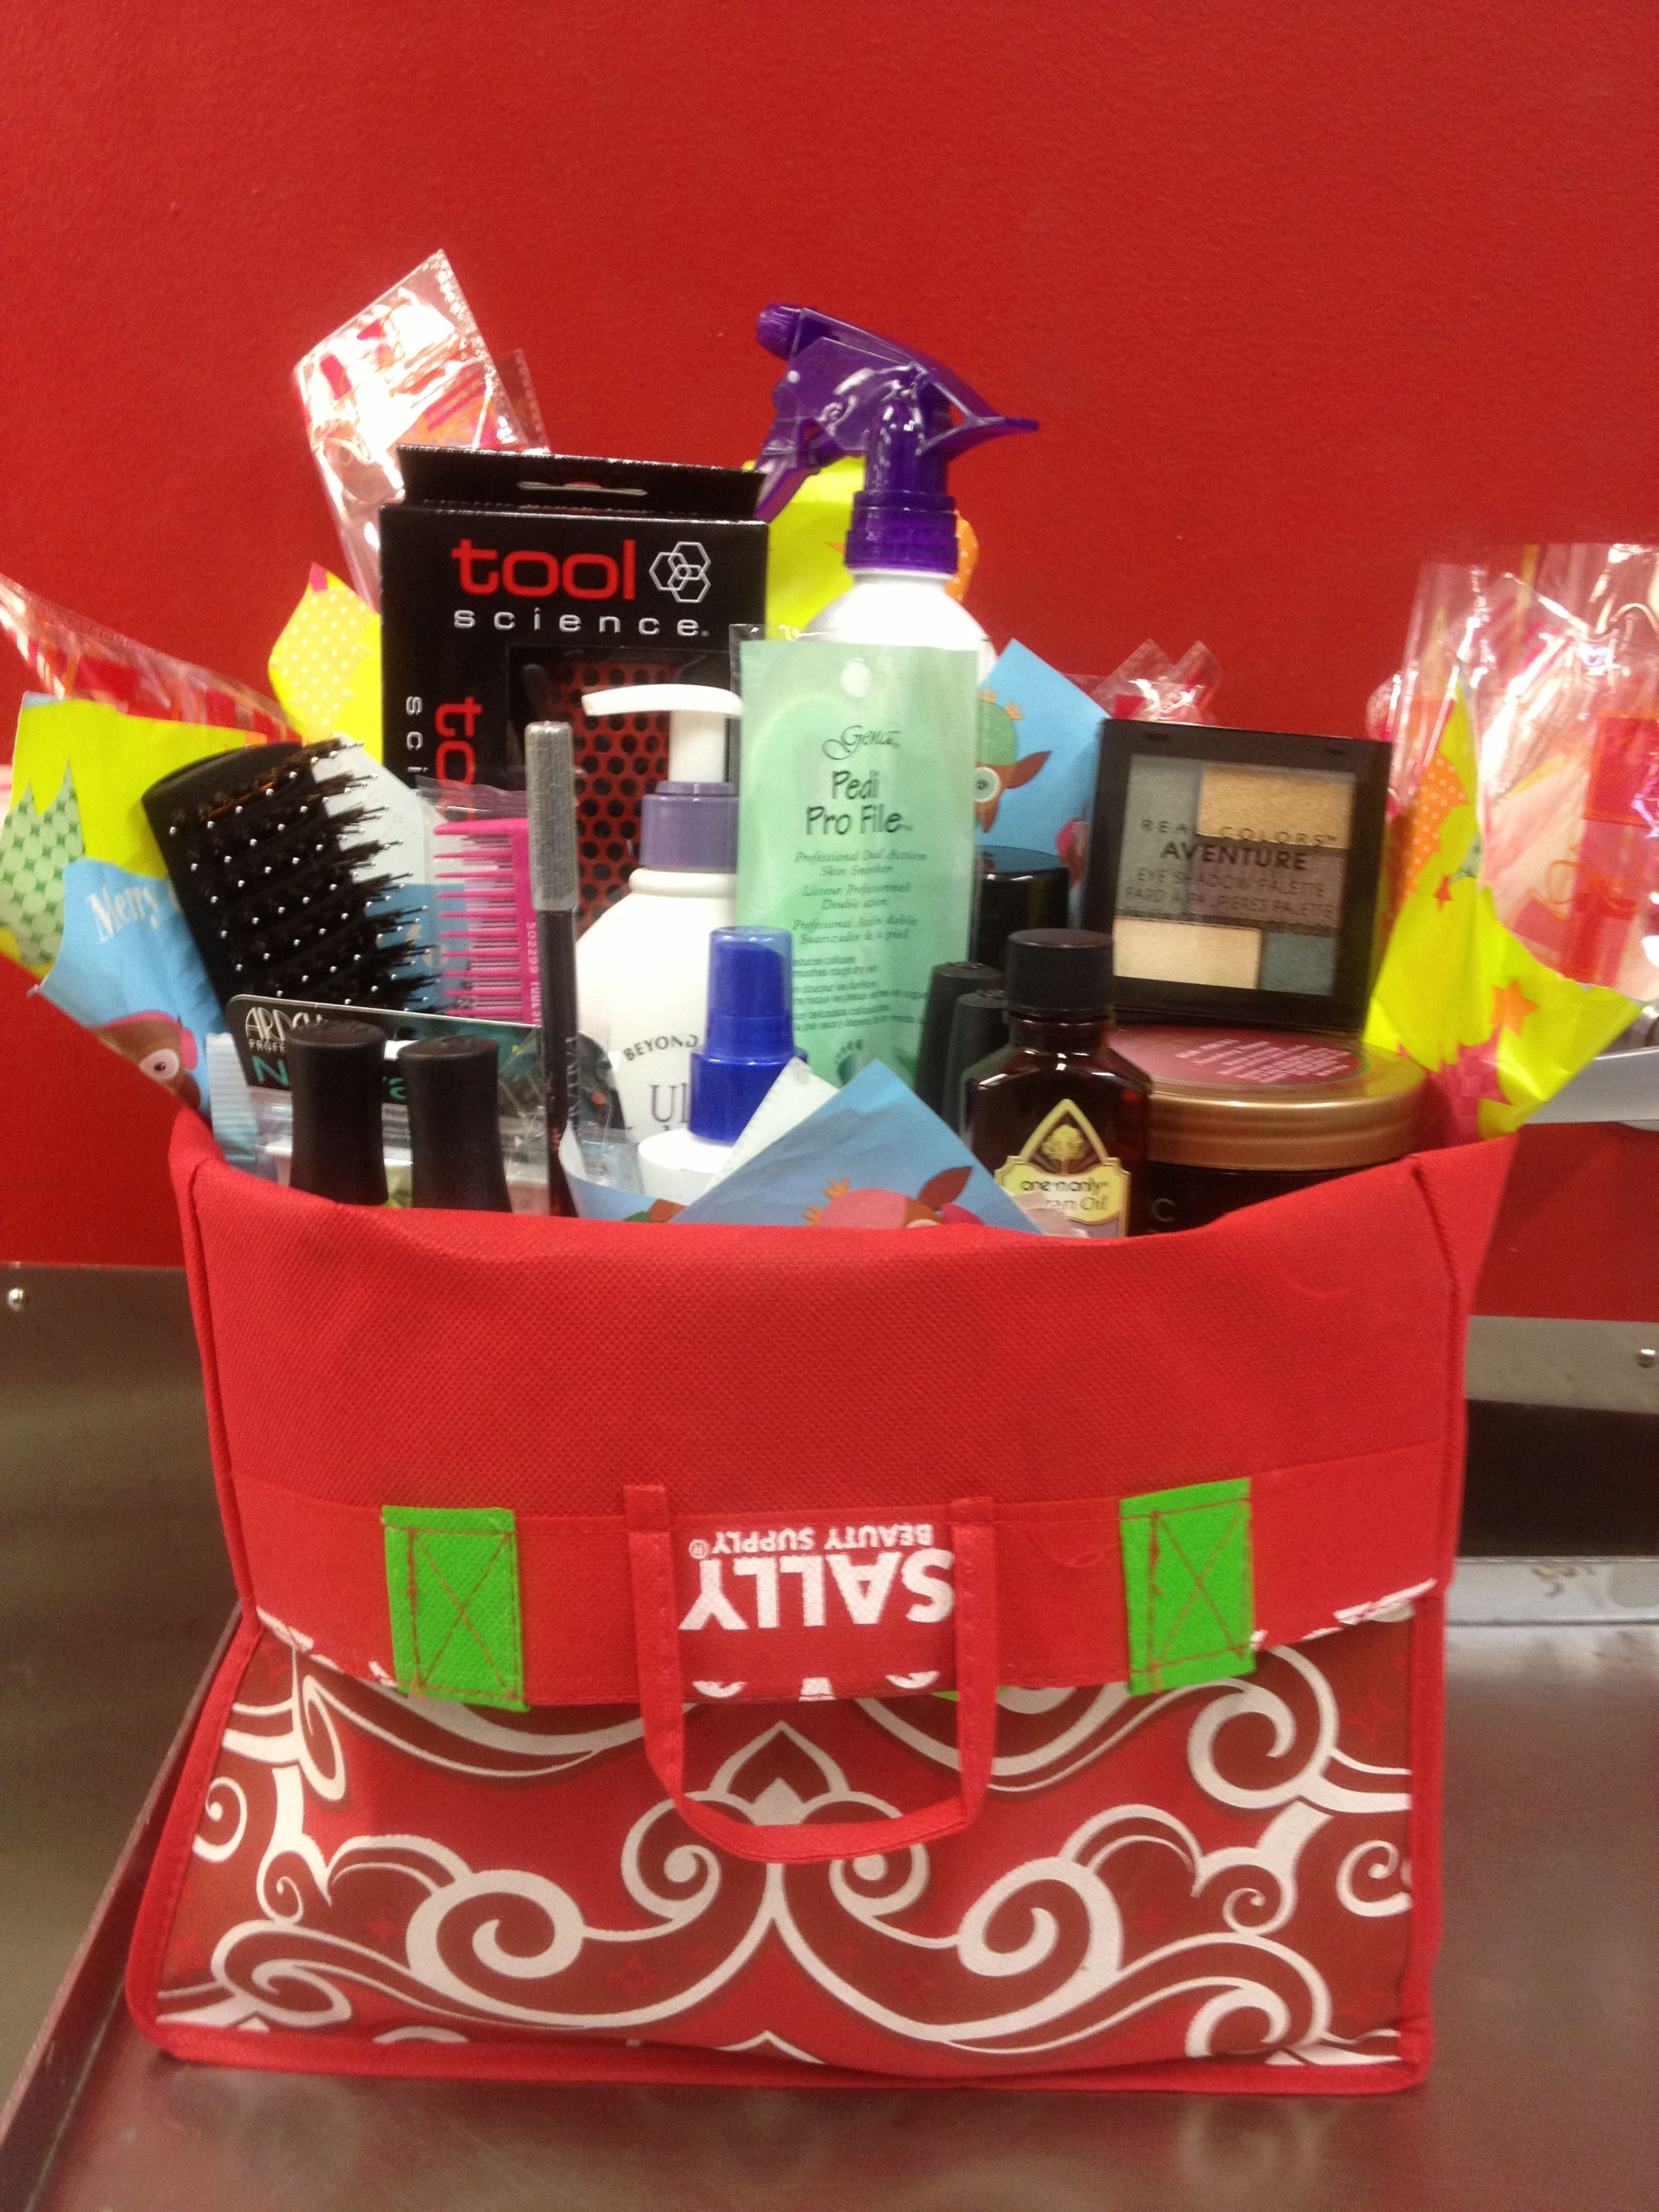 sally giveaway loaded bag full of goodies this Month March 20th 6/8pm and 10$ gift card with $40 ...